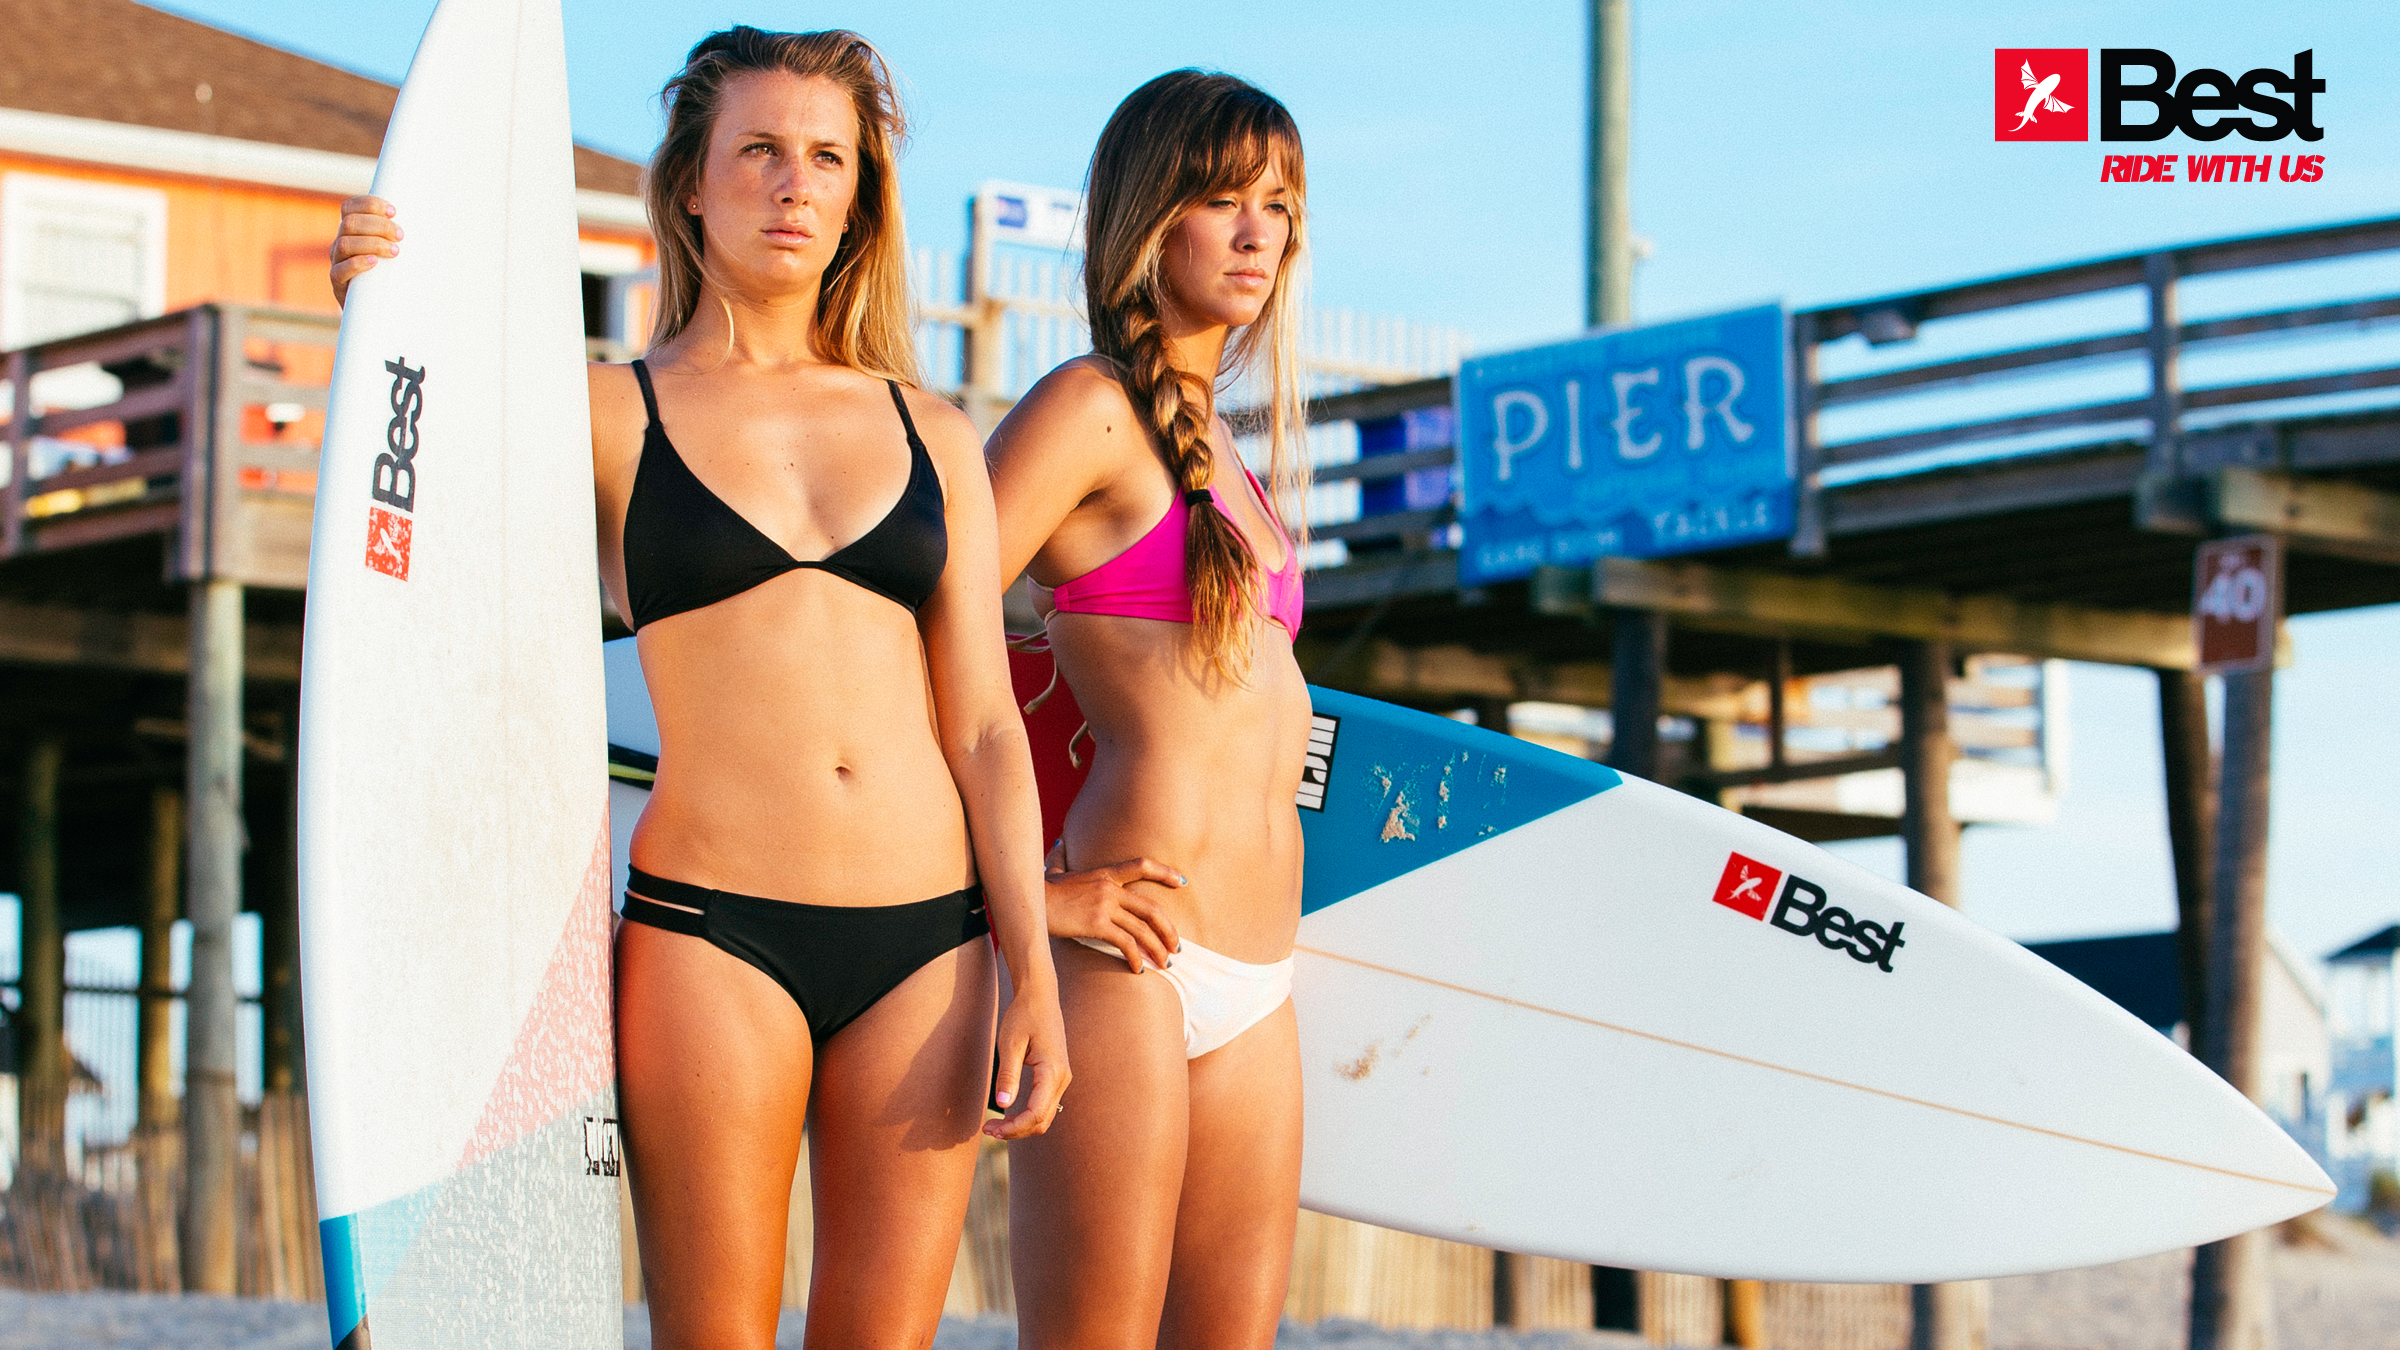 kitesurf wallpaper image - Two Best Kiteboarding kitechicks in bikini with surfboards looking to take a ride - in resolution: High Definition - HD 16:9 2400 X 1350